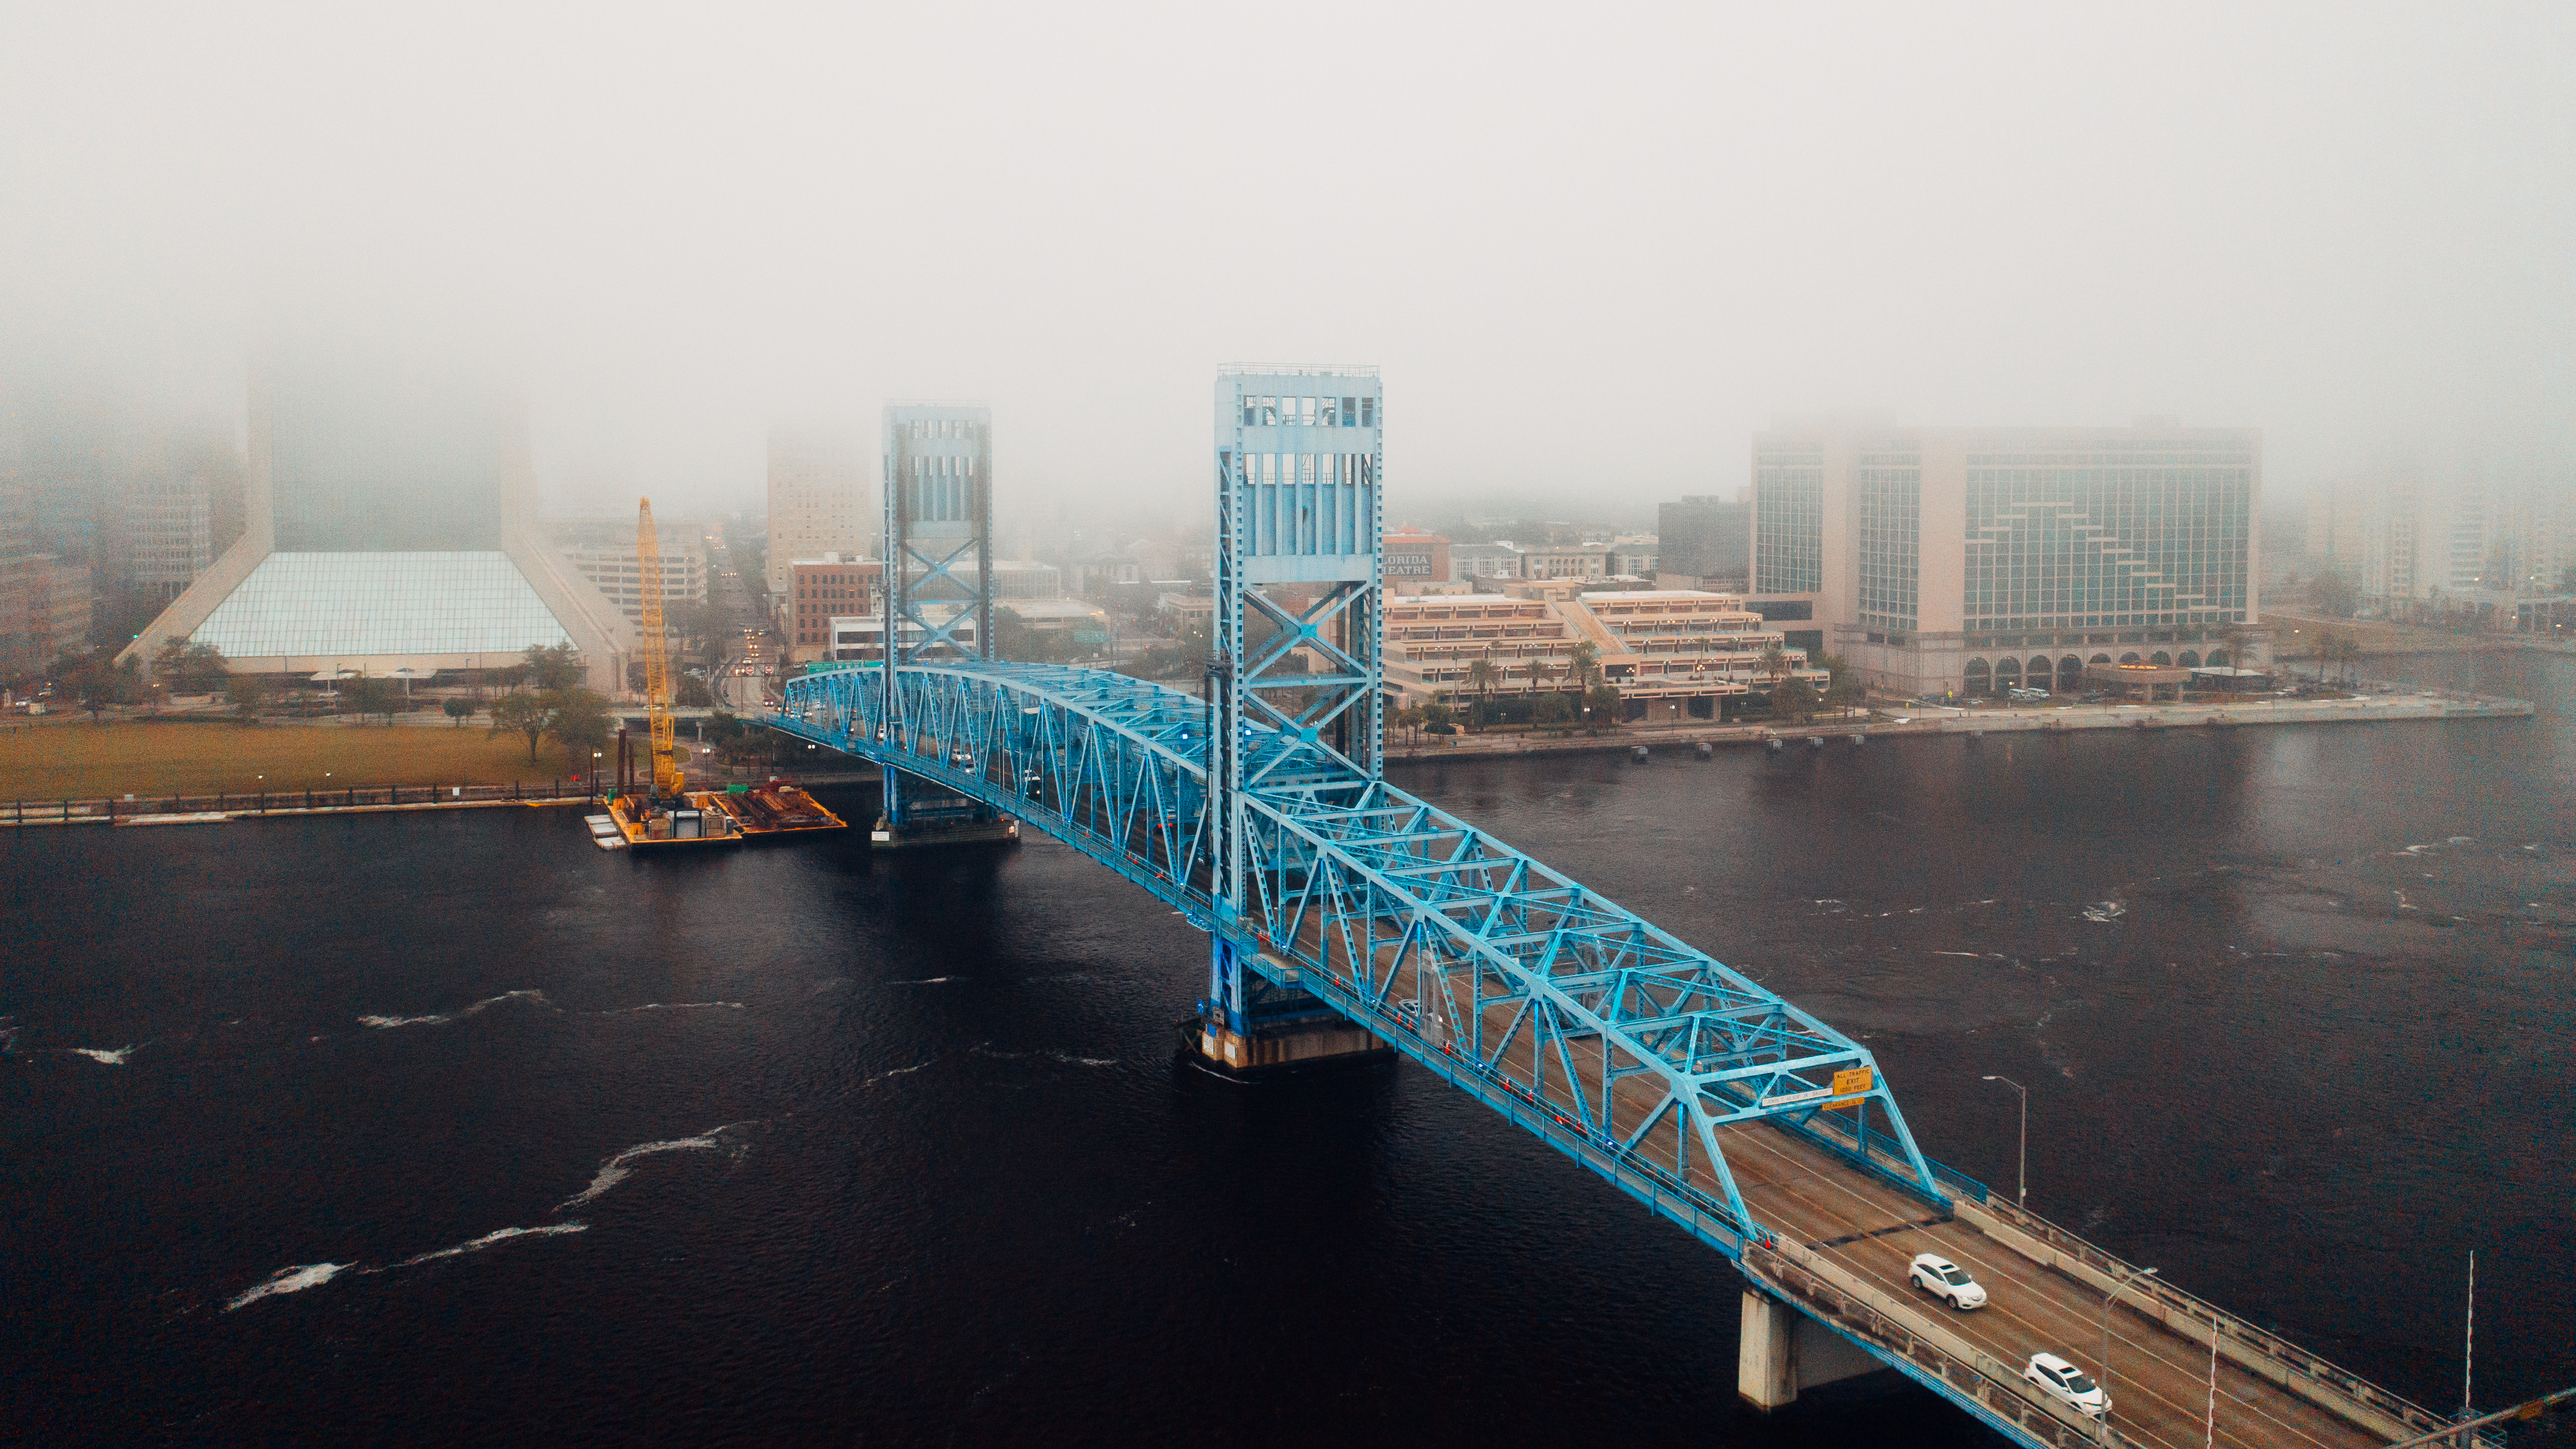 For more downtown Jacksonville drone photography, contact at create@lanceasper.com!